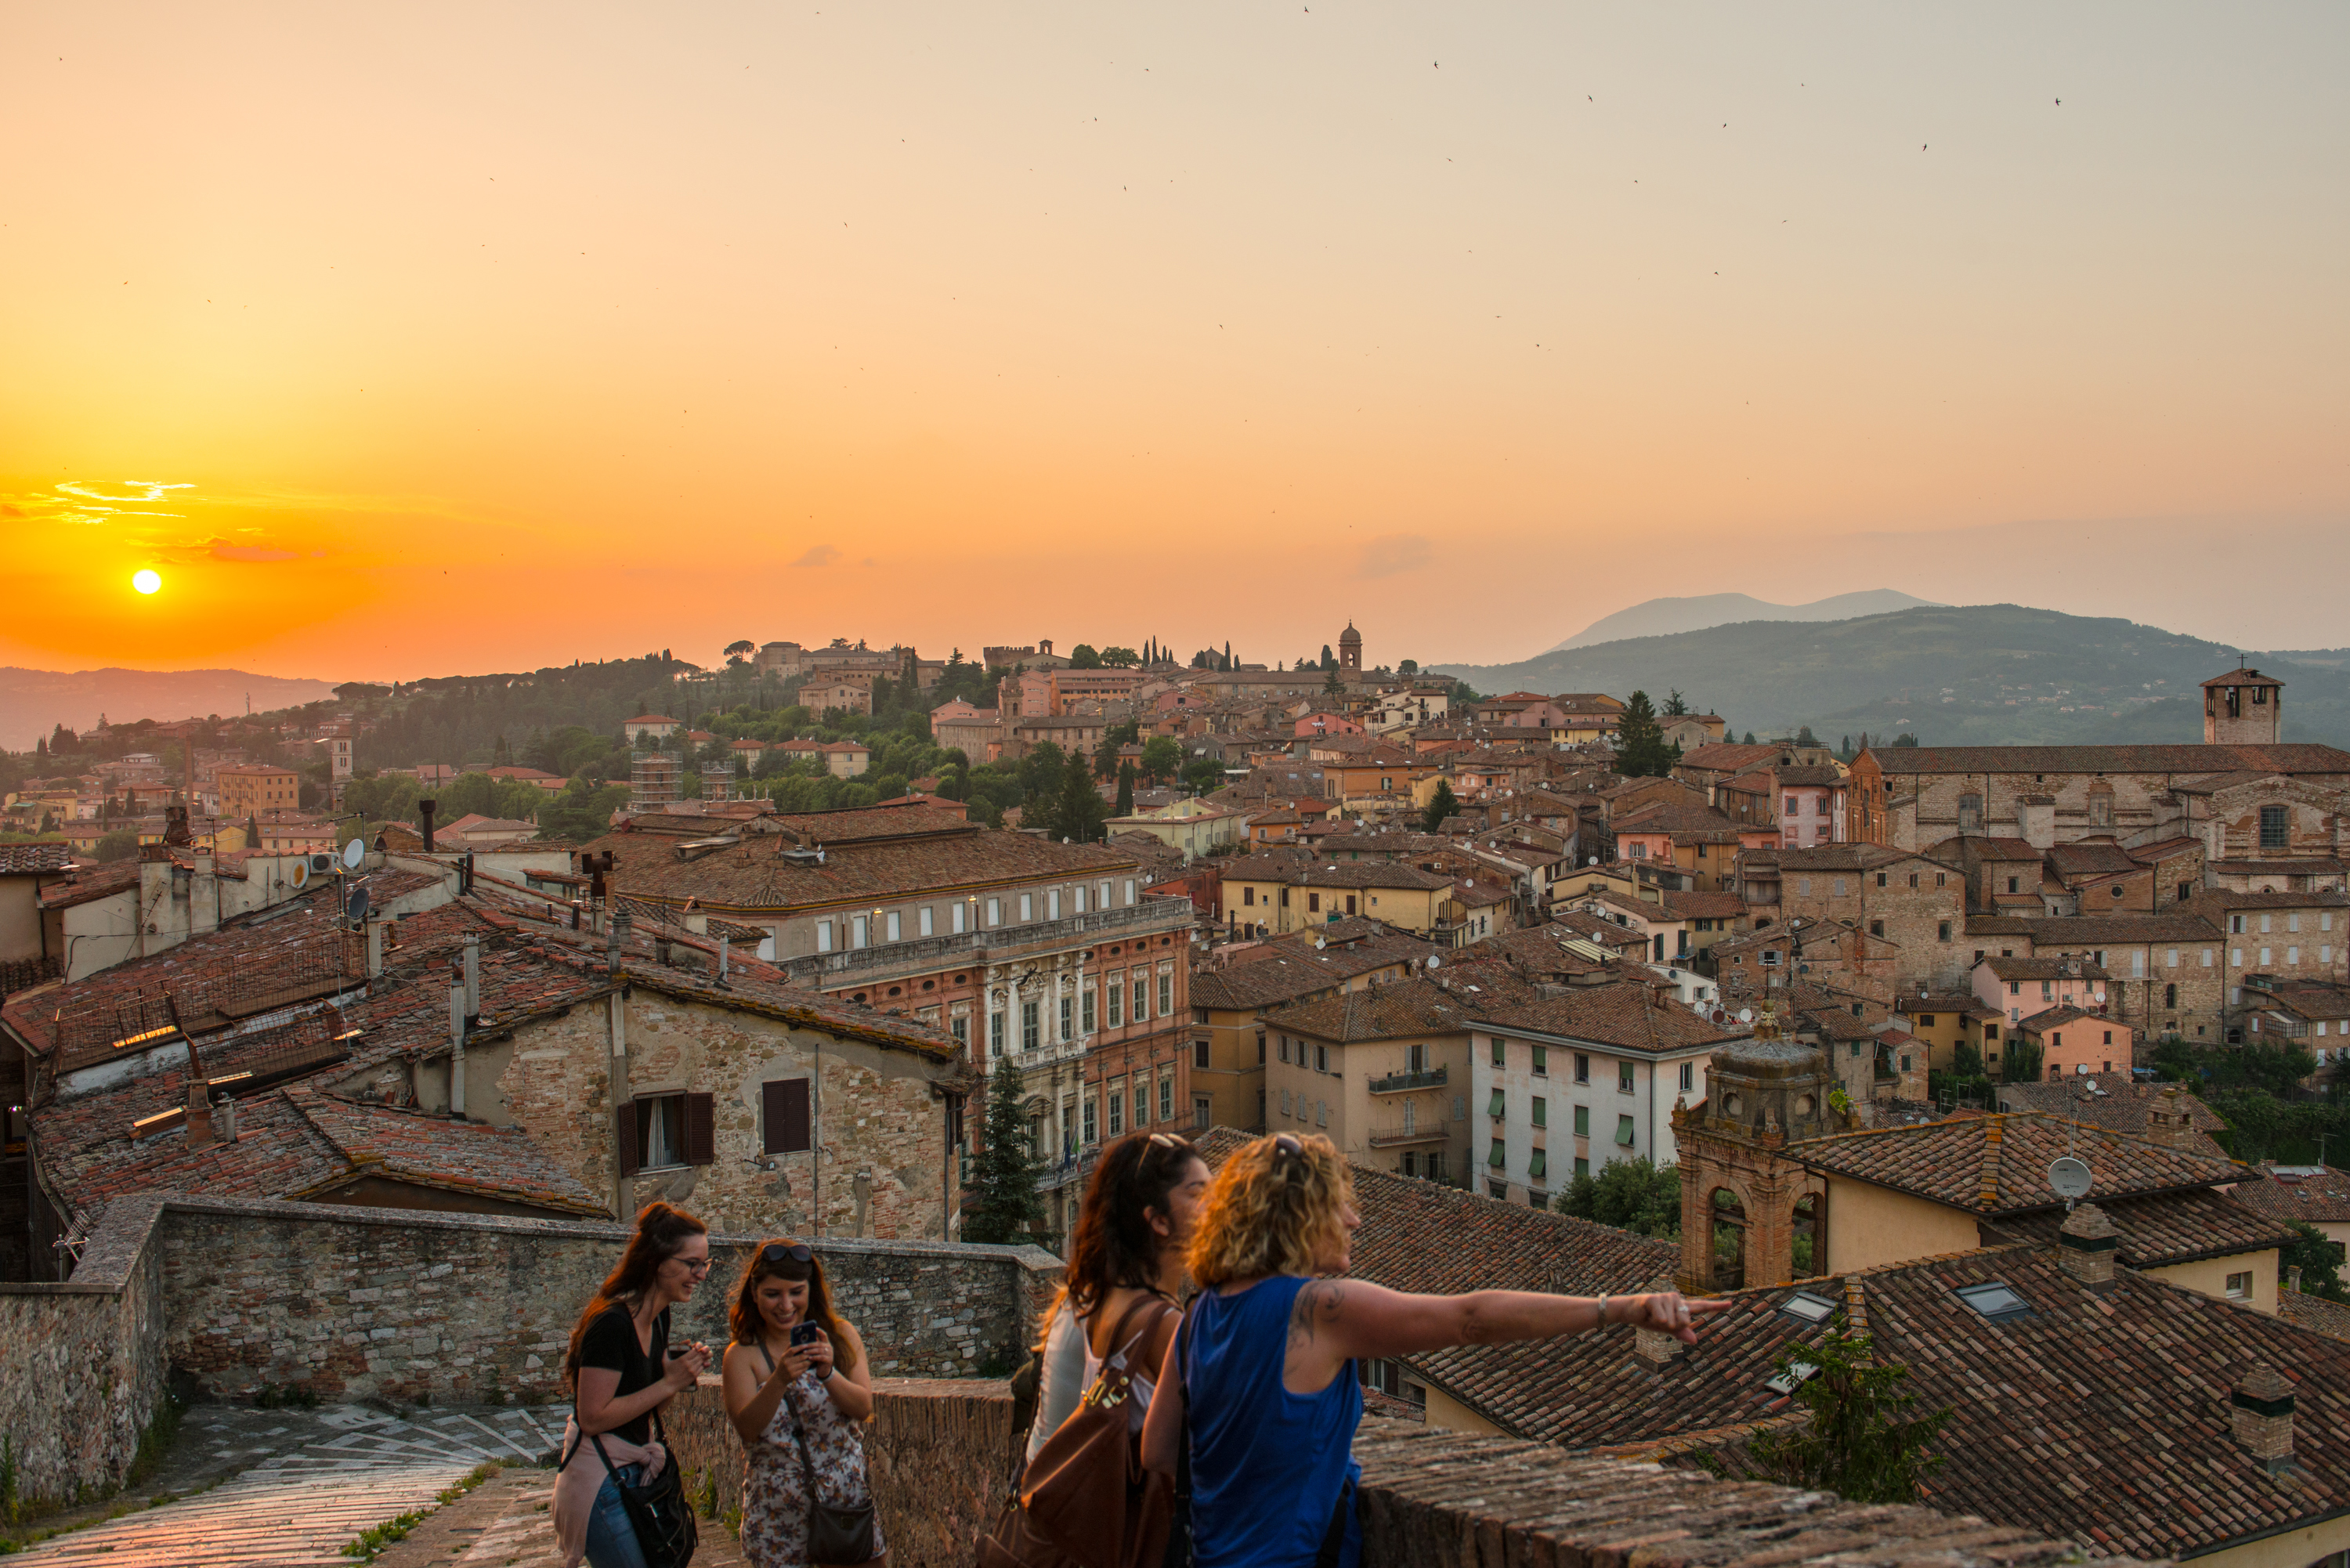 Sunset in Perugia, Italy